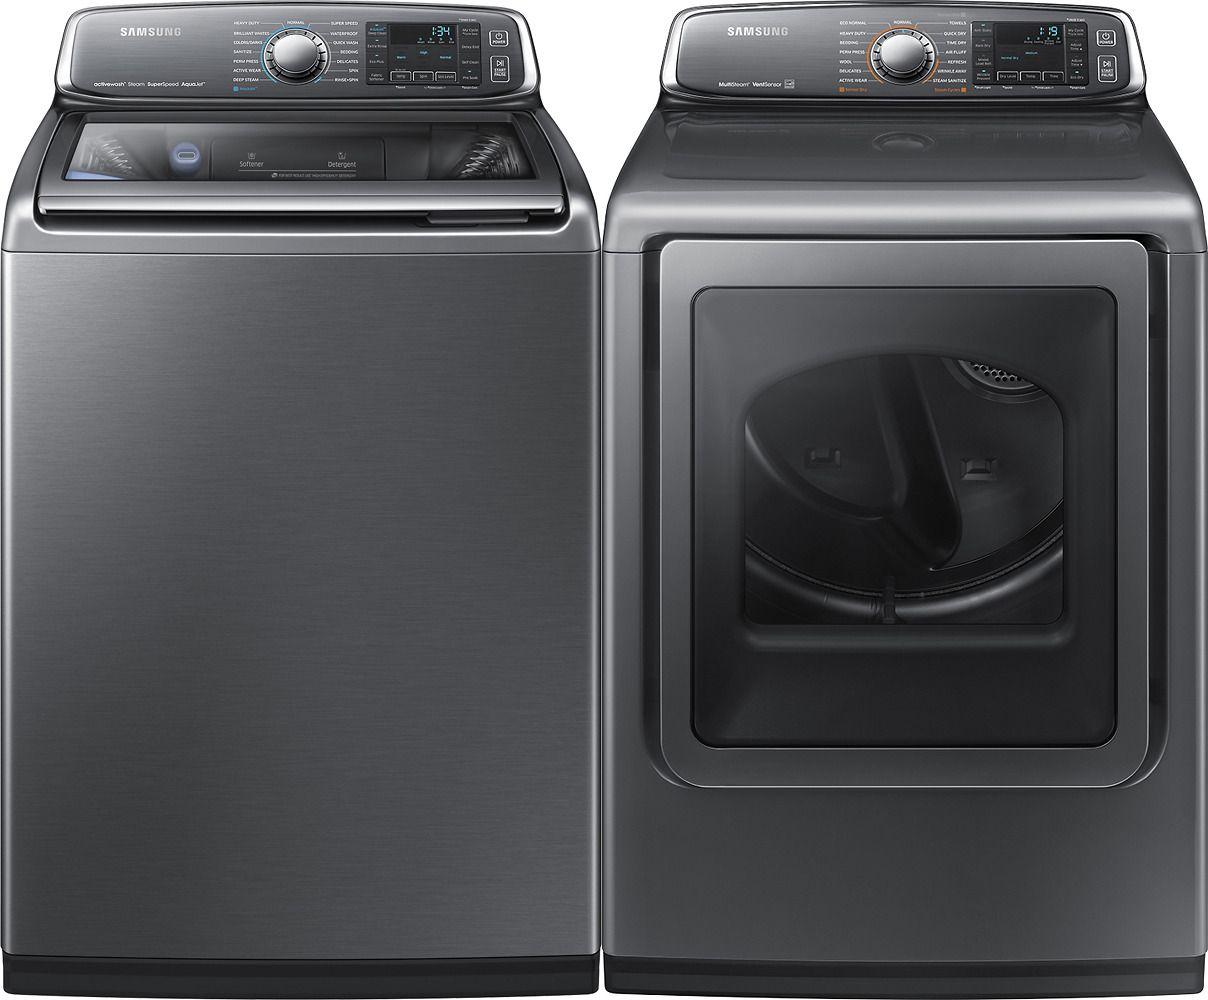 Dominate your laundry with the samsung activewash pair